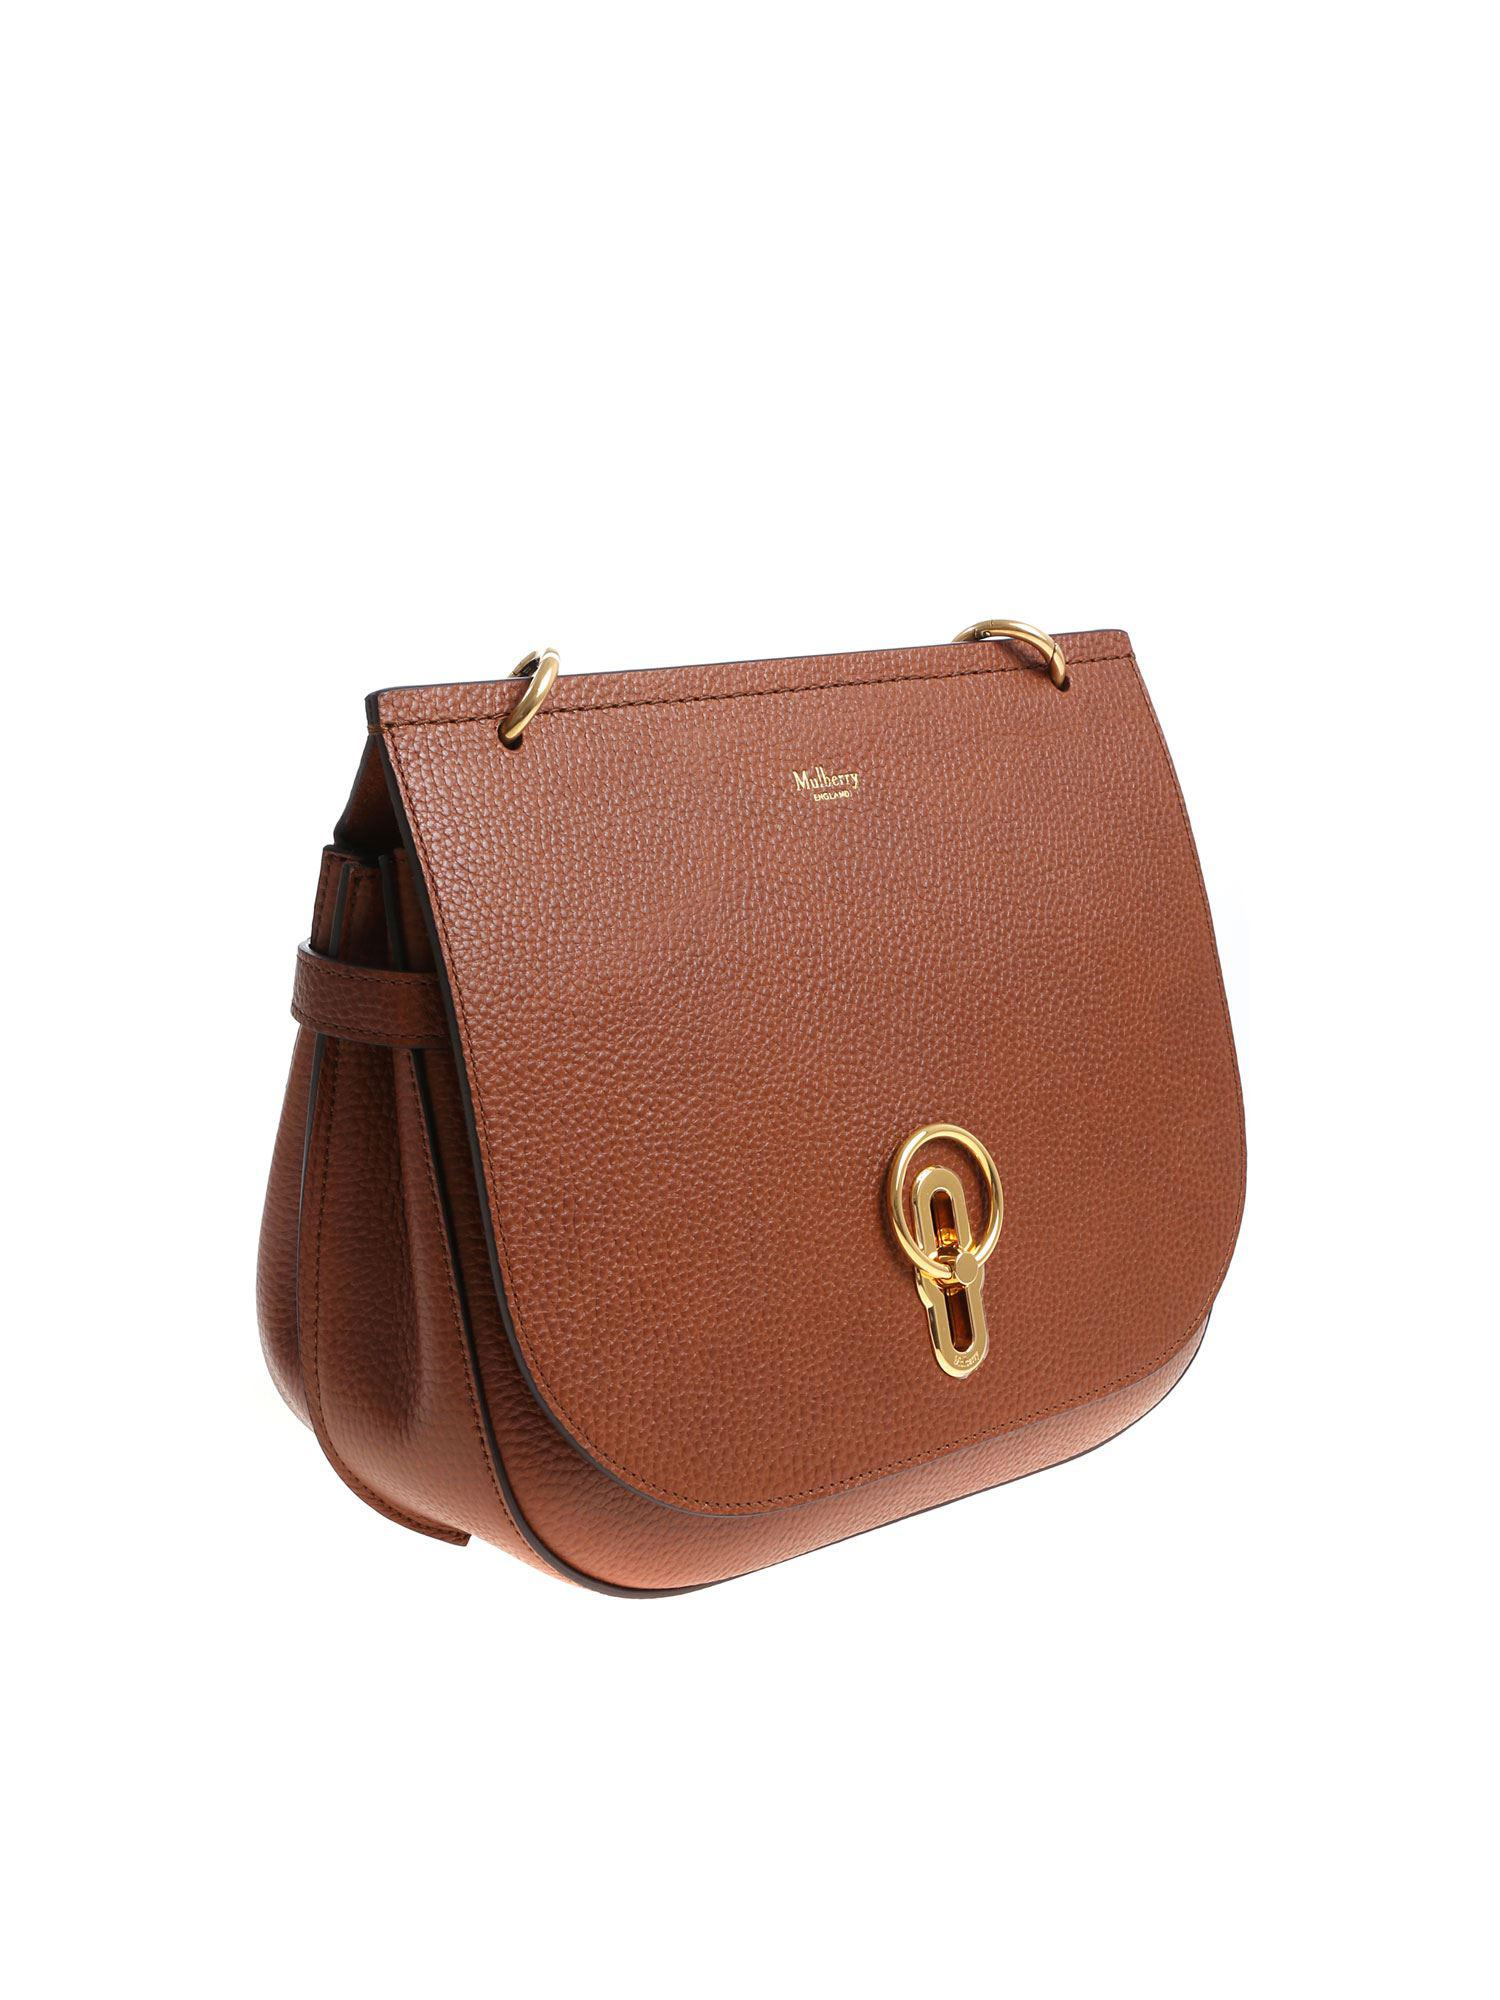 e3ac2443b0 Mulberry Tan Colored Amberley Bag in Brown - Lyst